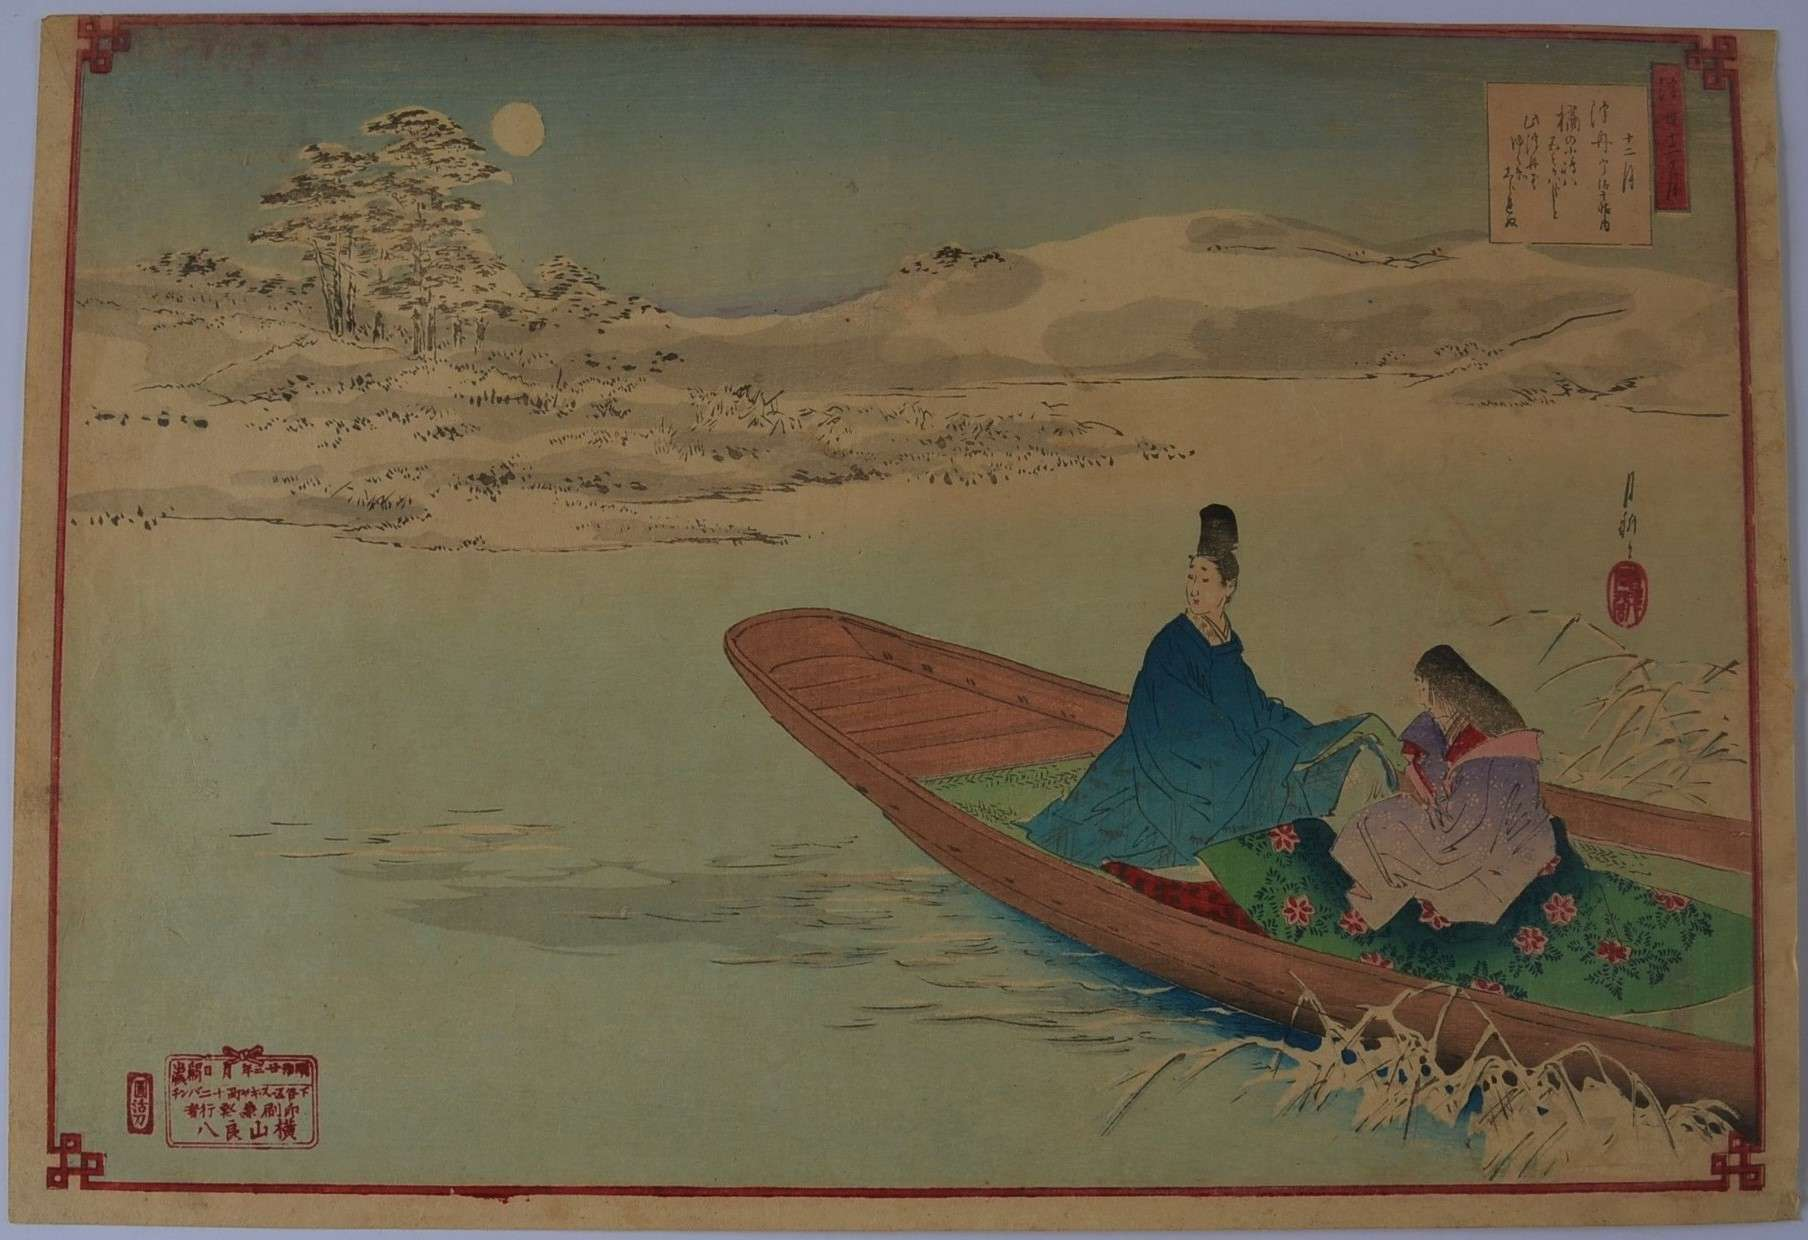 GEKKO OGATA: #P2989 LOVERS AT HEIAN COURT ENJOY AN EVENING BOAT RIDE(1890)